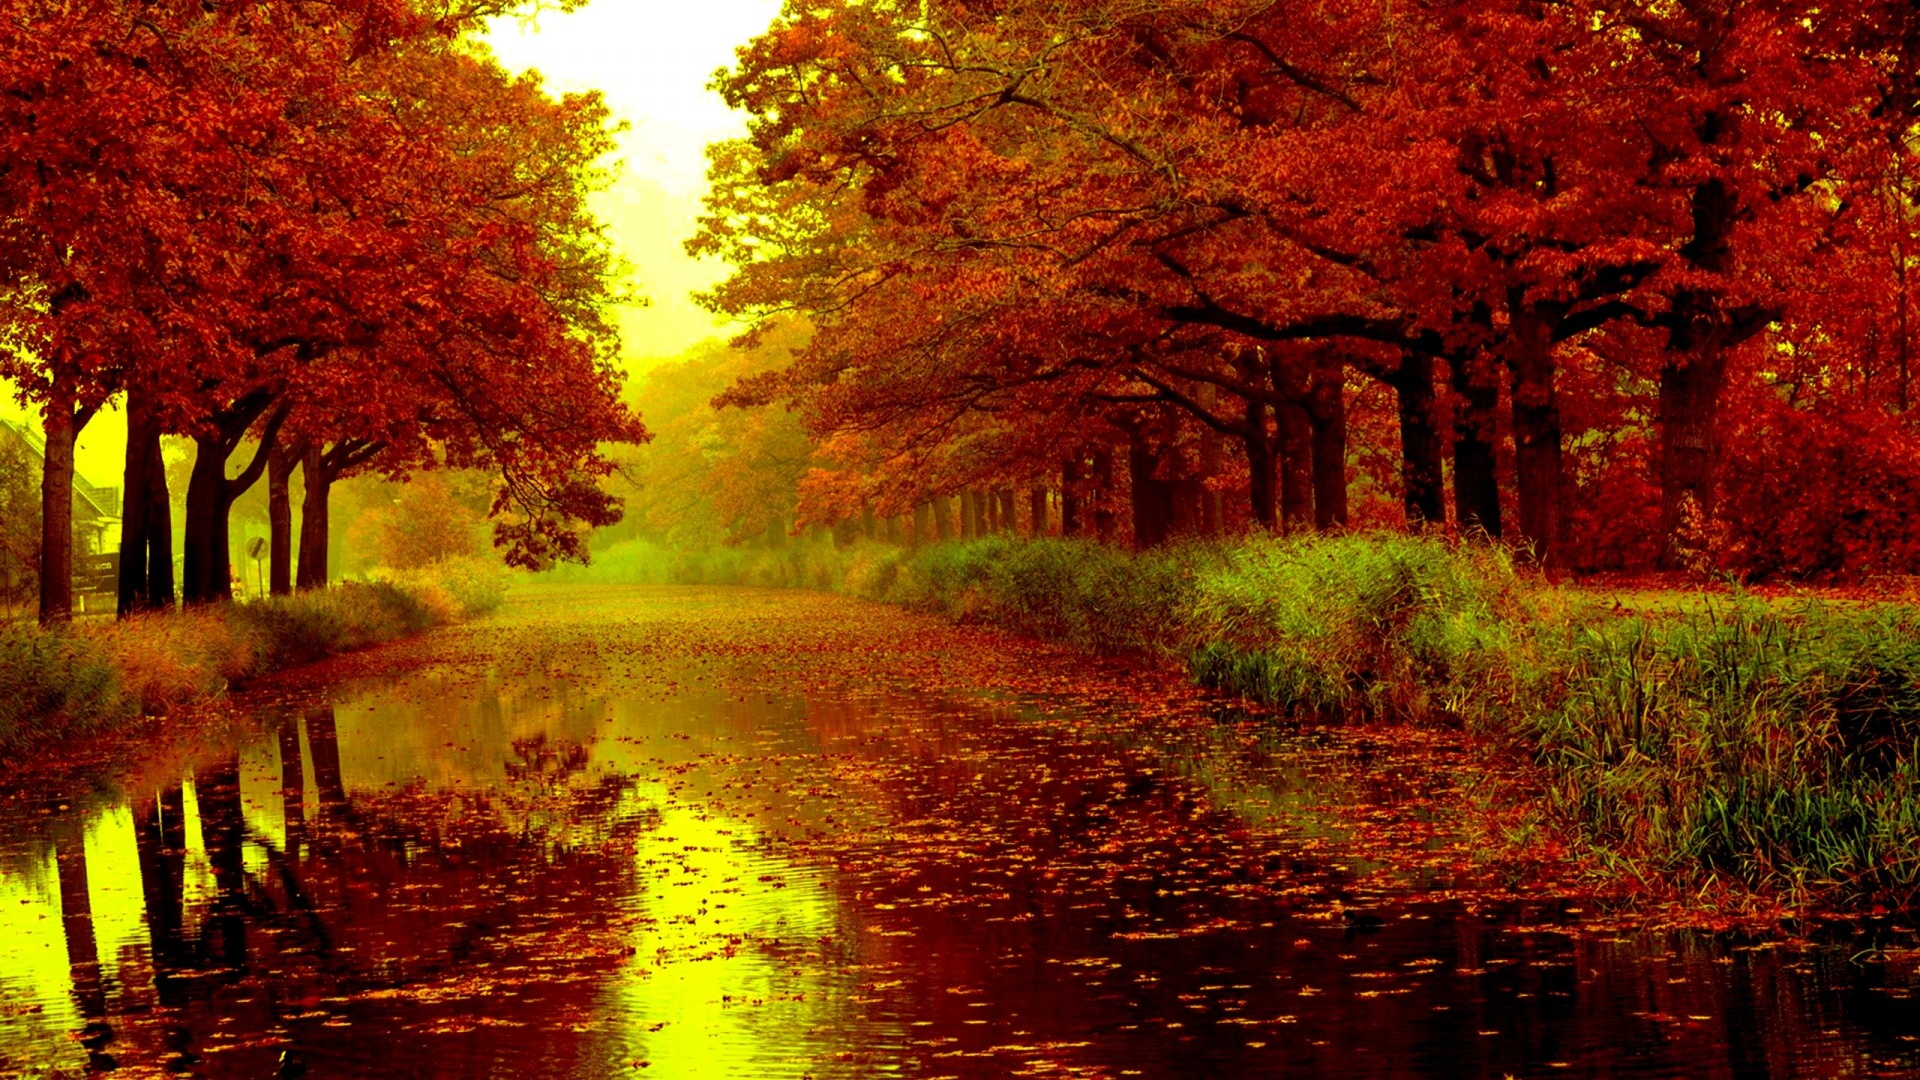 Fall Leaves Wallpaper Border 1920x1080 Adorable Red Trees River Leafs Desktop Pc And